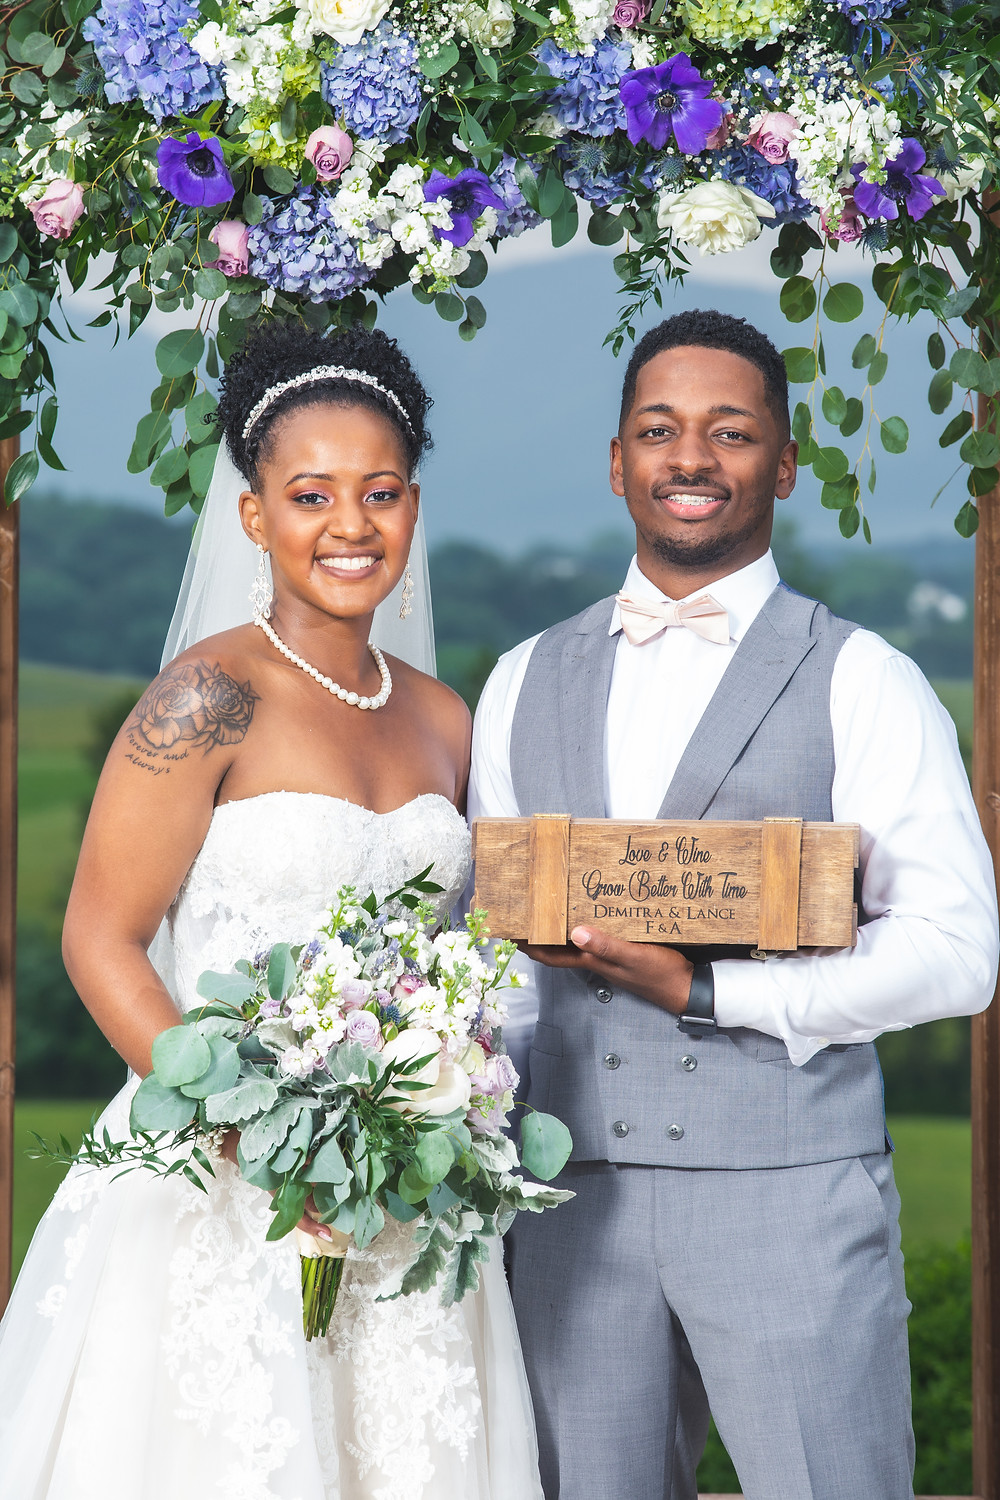 The bride and groom pose for a formal portrait with the bouquet from The Faded Poppy and the Crosskeys Love Letter box after the wedding ceremony at Crosskeys Vineyards in Mt. Crawford, Virginia.